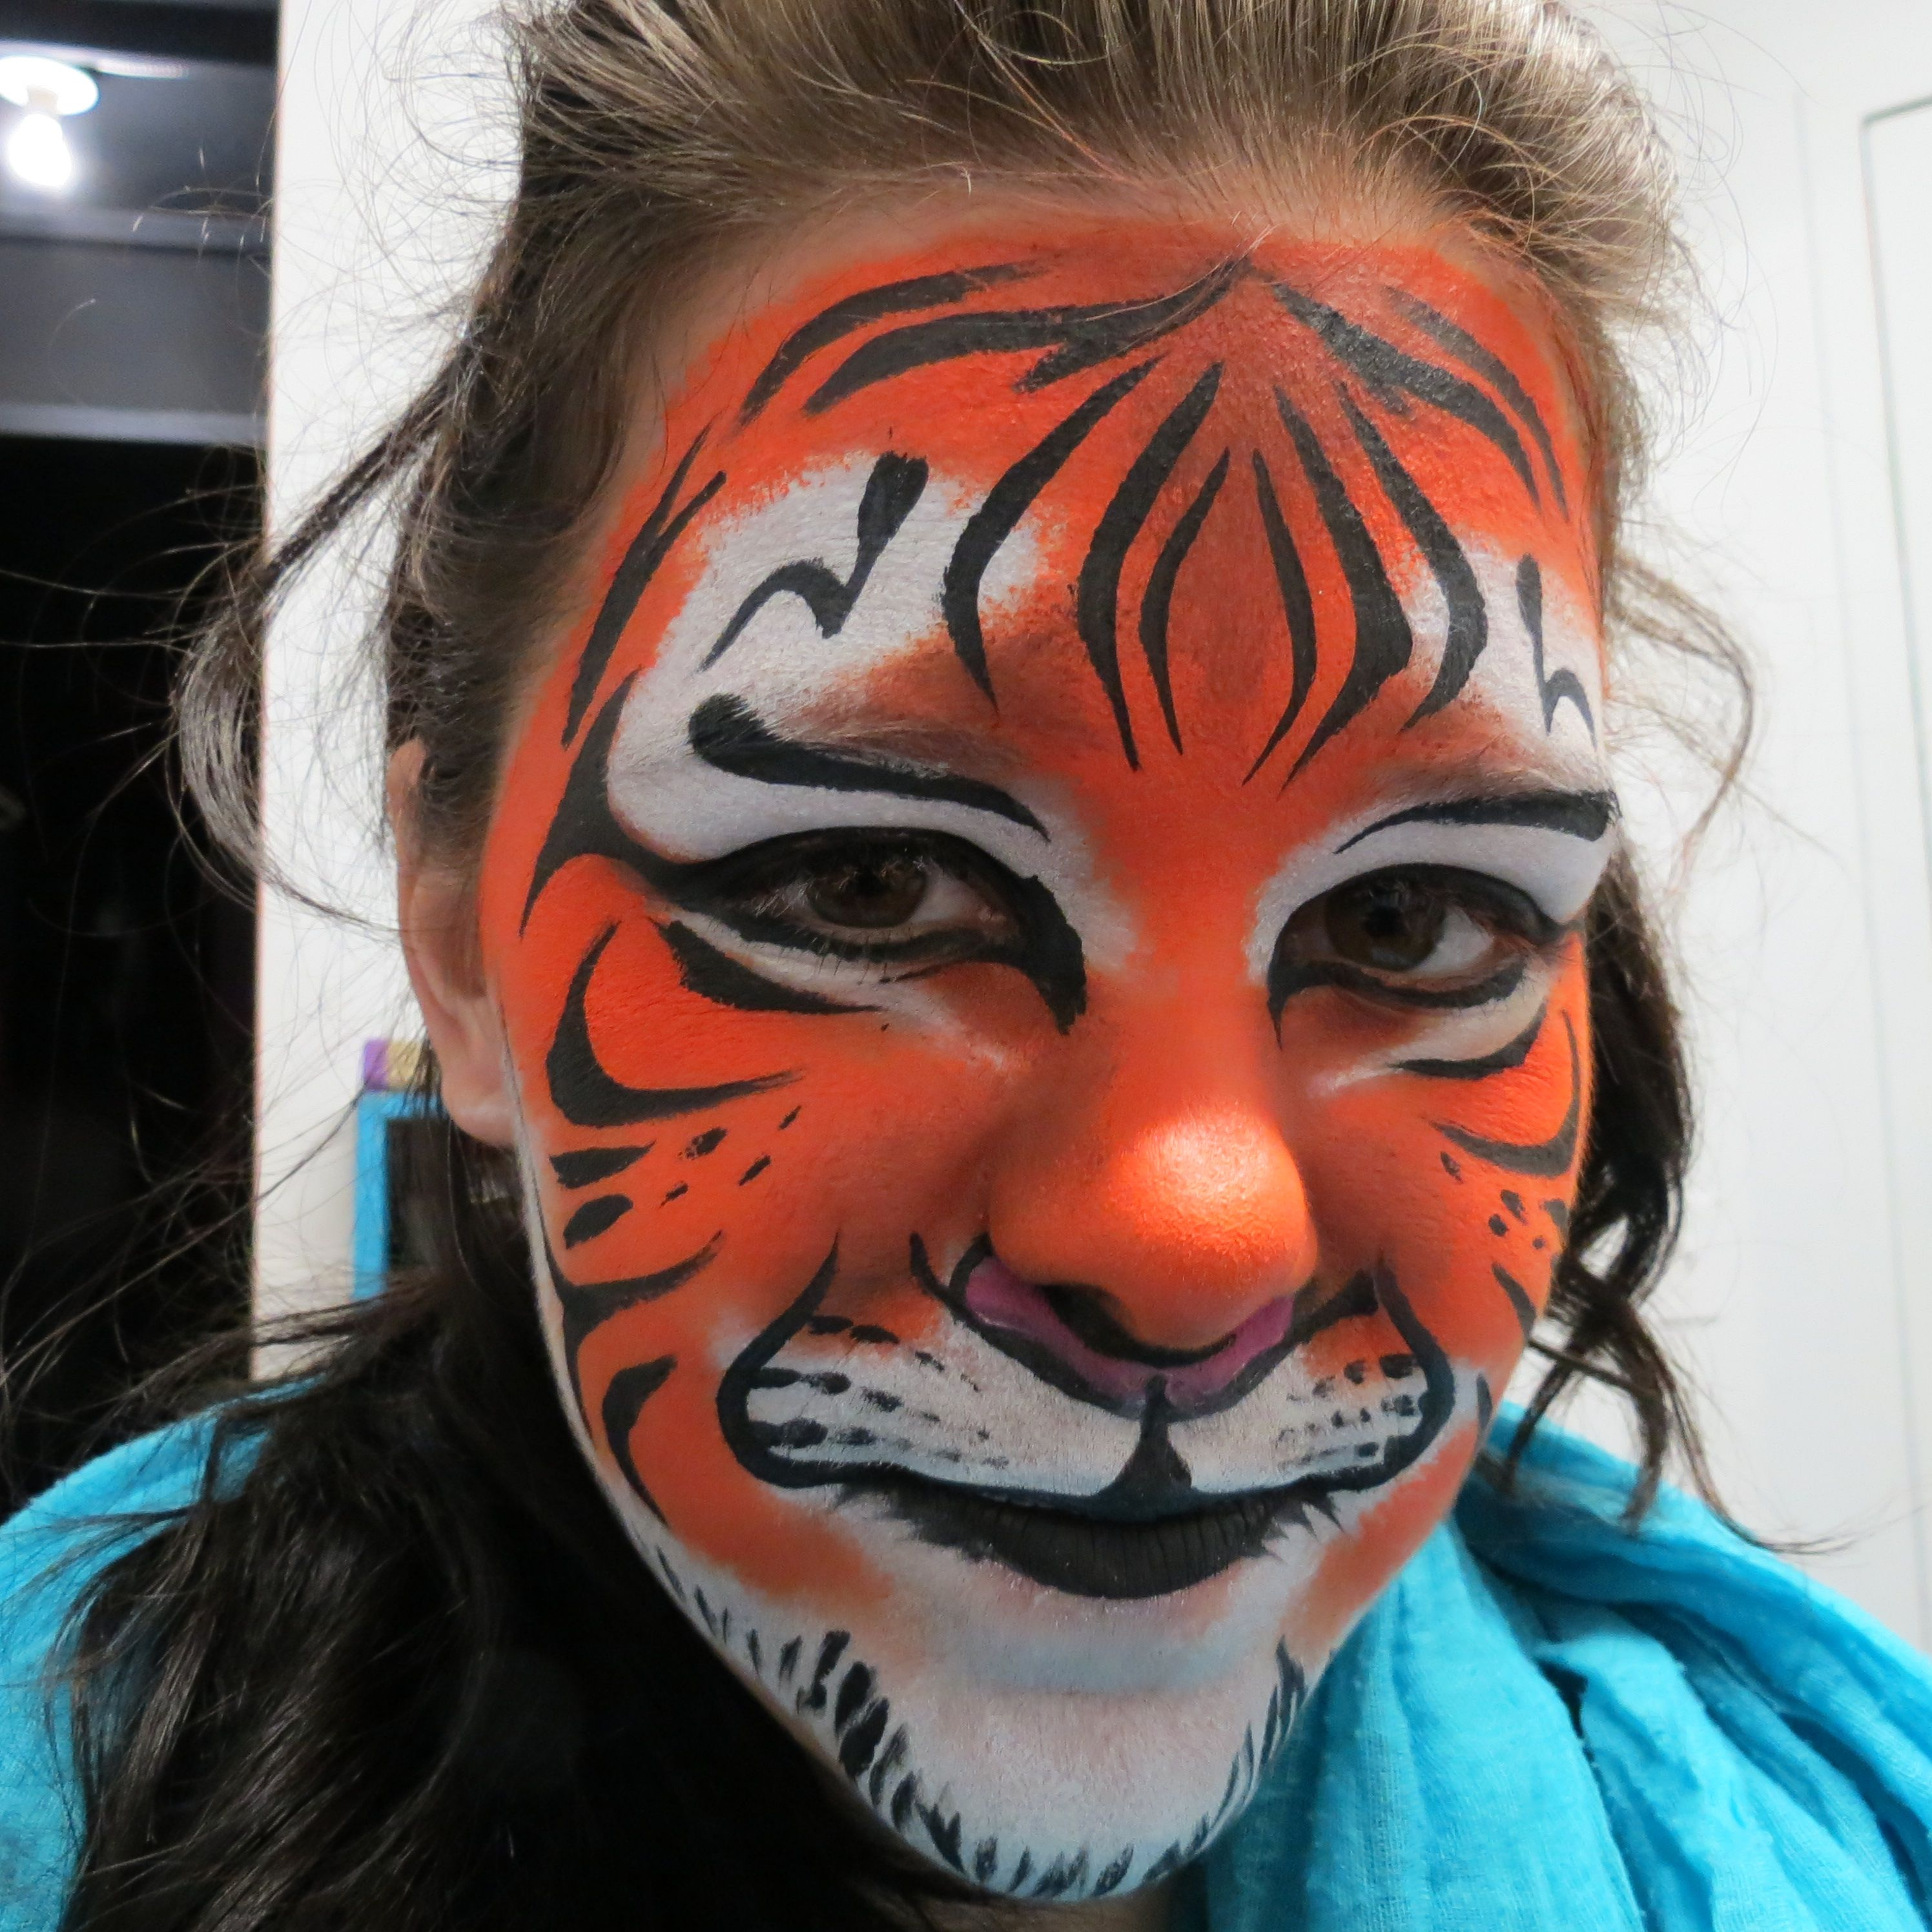 Maquillage pour enfant tigre children make up tiger face painting for kids maquillage pour - Maquillage pin up ...